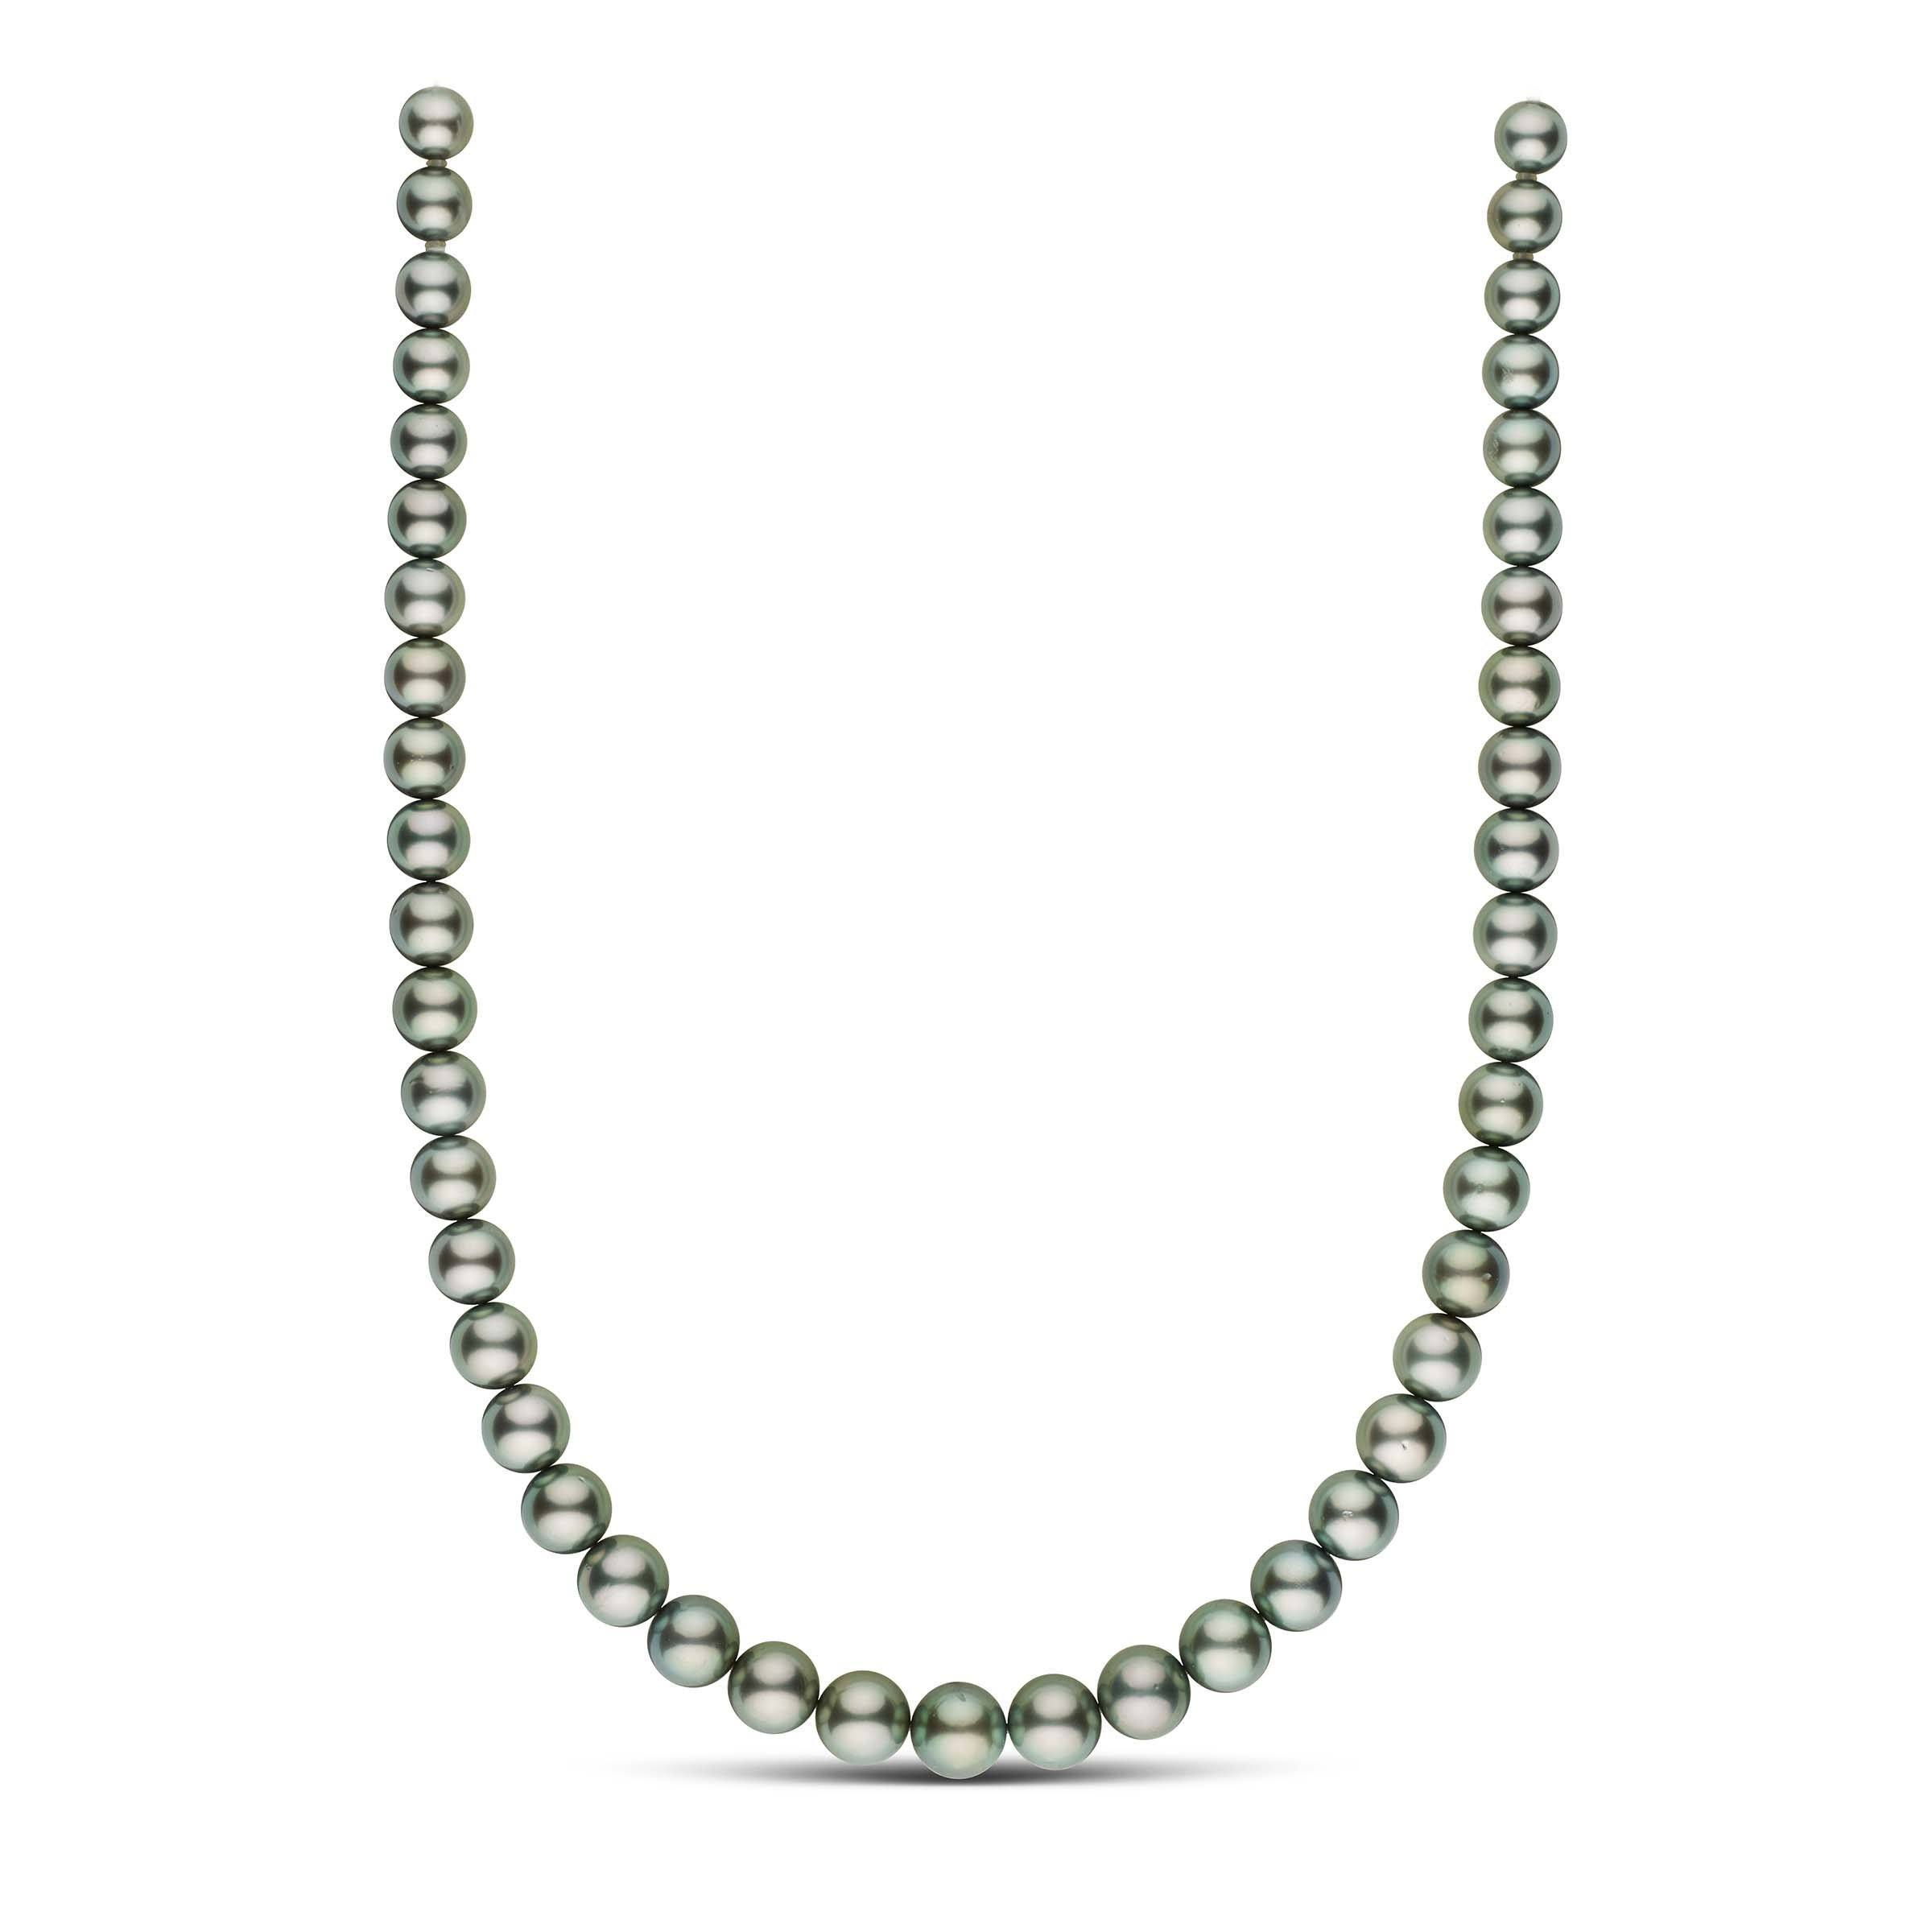 18-inch 8.1-10.6 mm AA+/AAA Round Tahitian Pearl Necklace